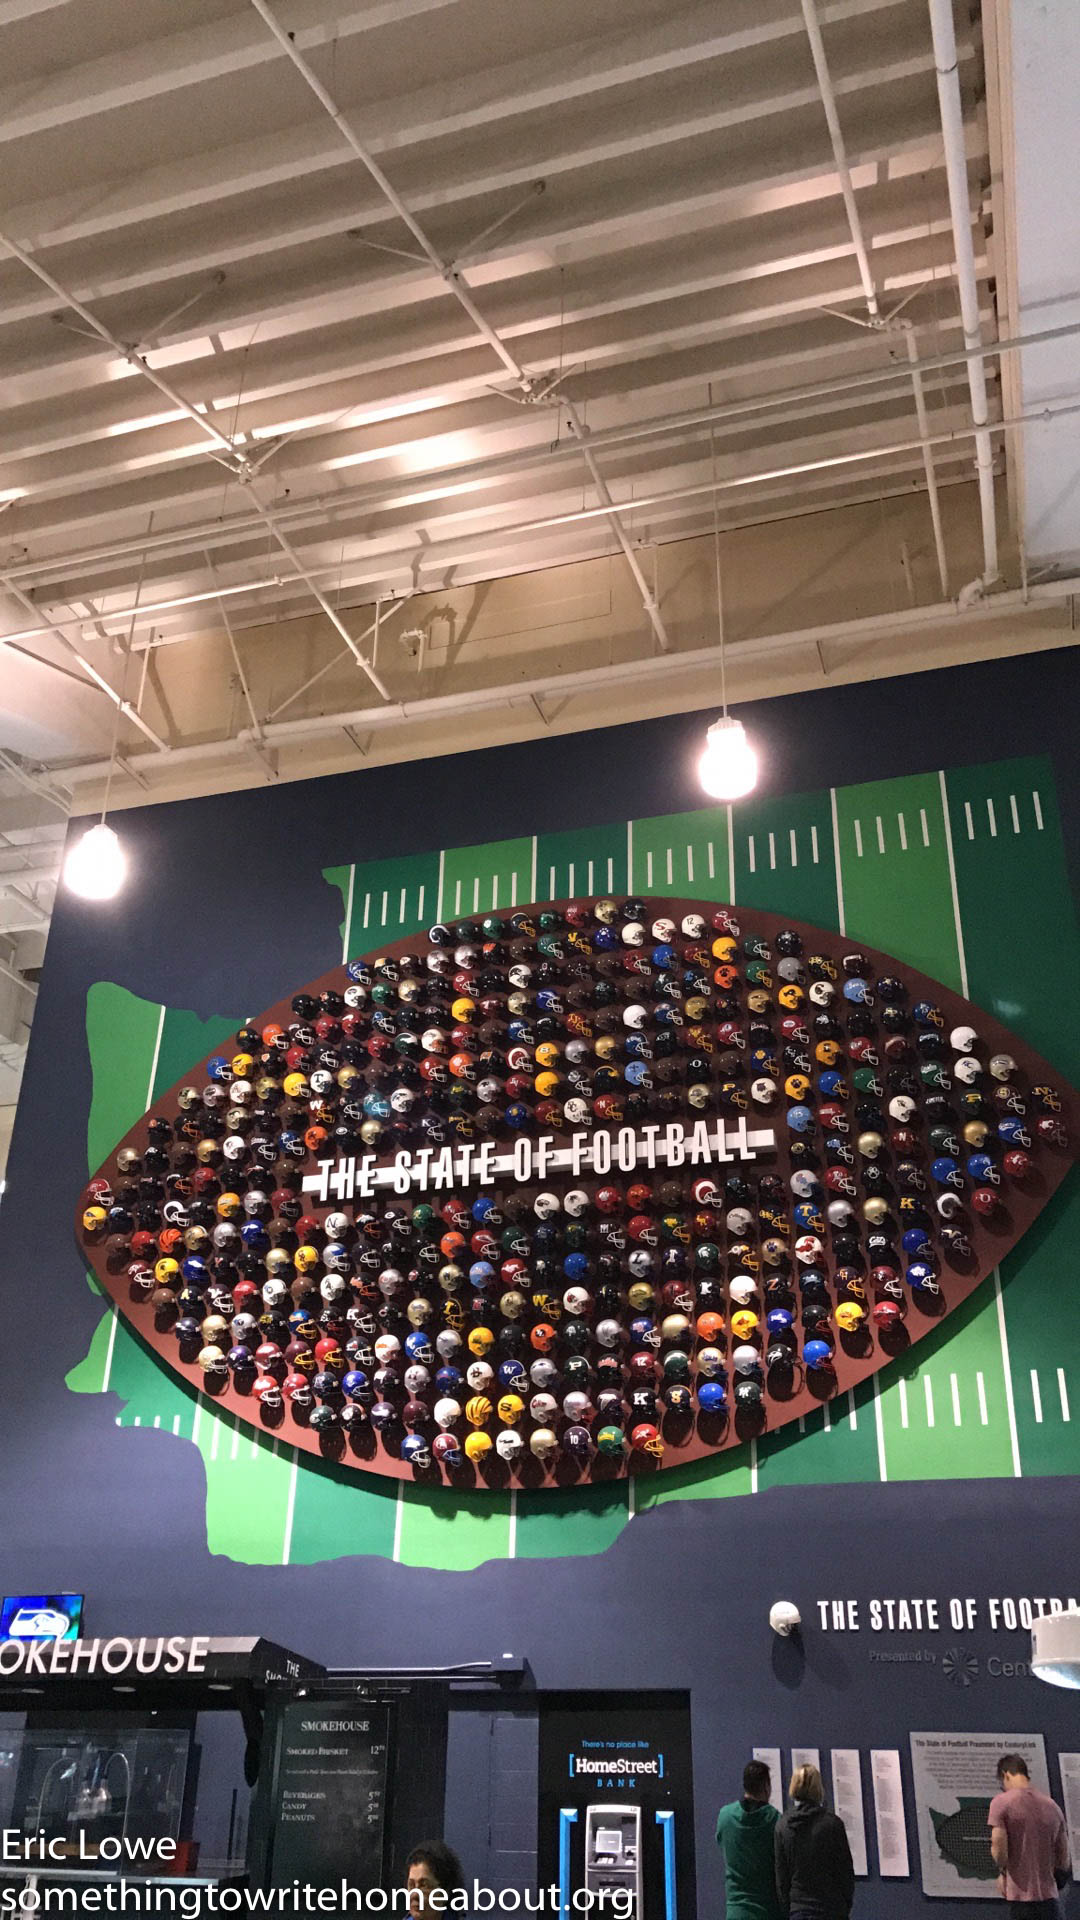 The State of Football. This piece features a depiction of Washington and holds replica football helmets from every high school football team in the state.